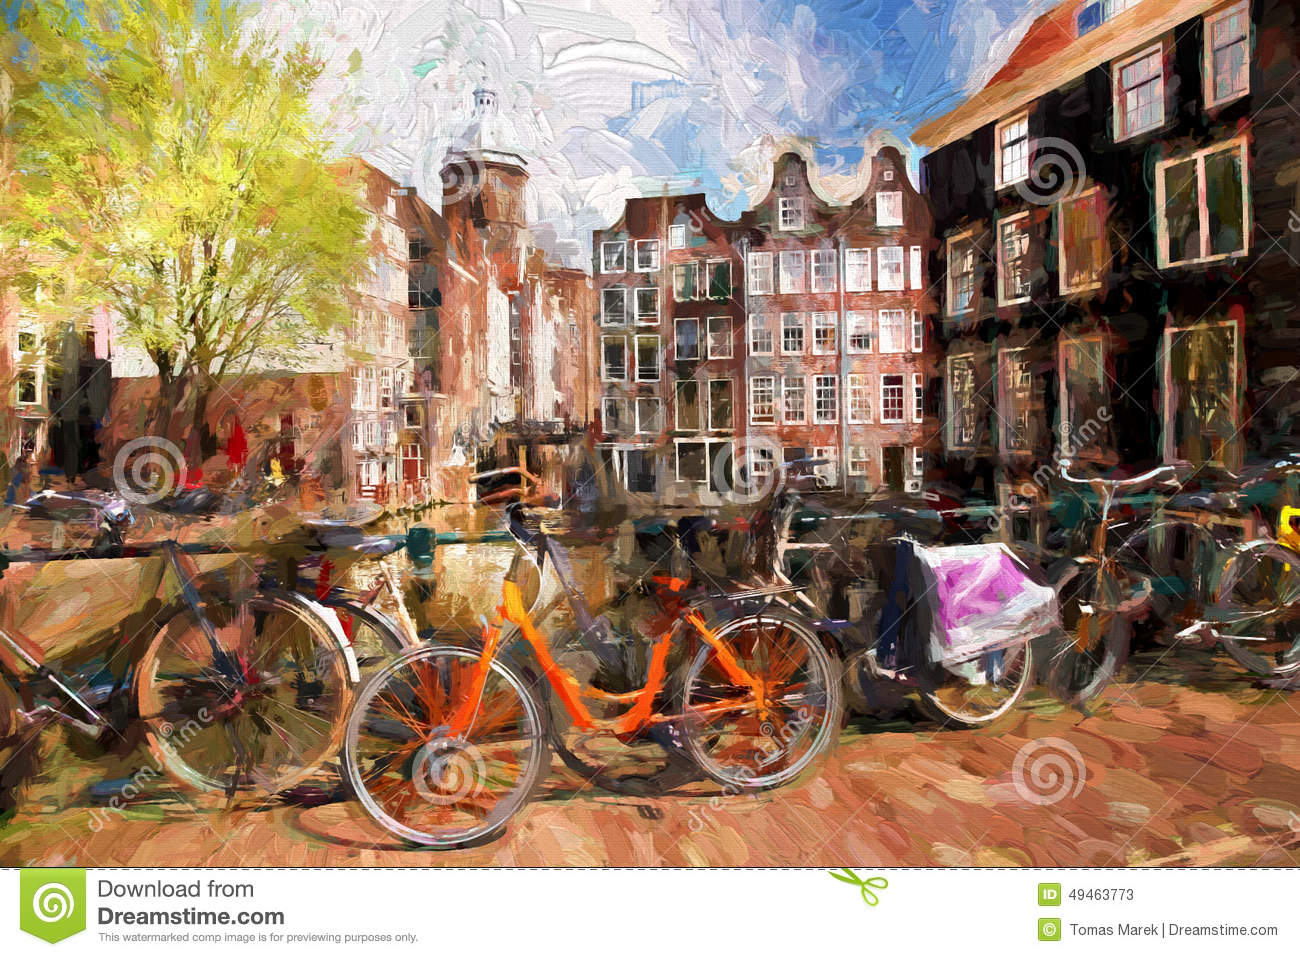 amsterdam city in holland artwork in painting style stock image image of amsterdam artwork. Black Bedroom Furniture Sets. Home Design Ideas